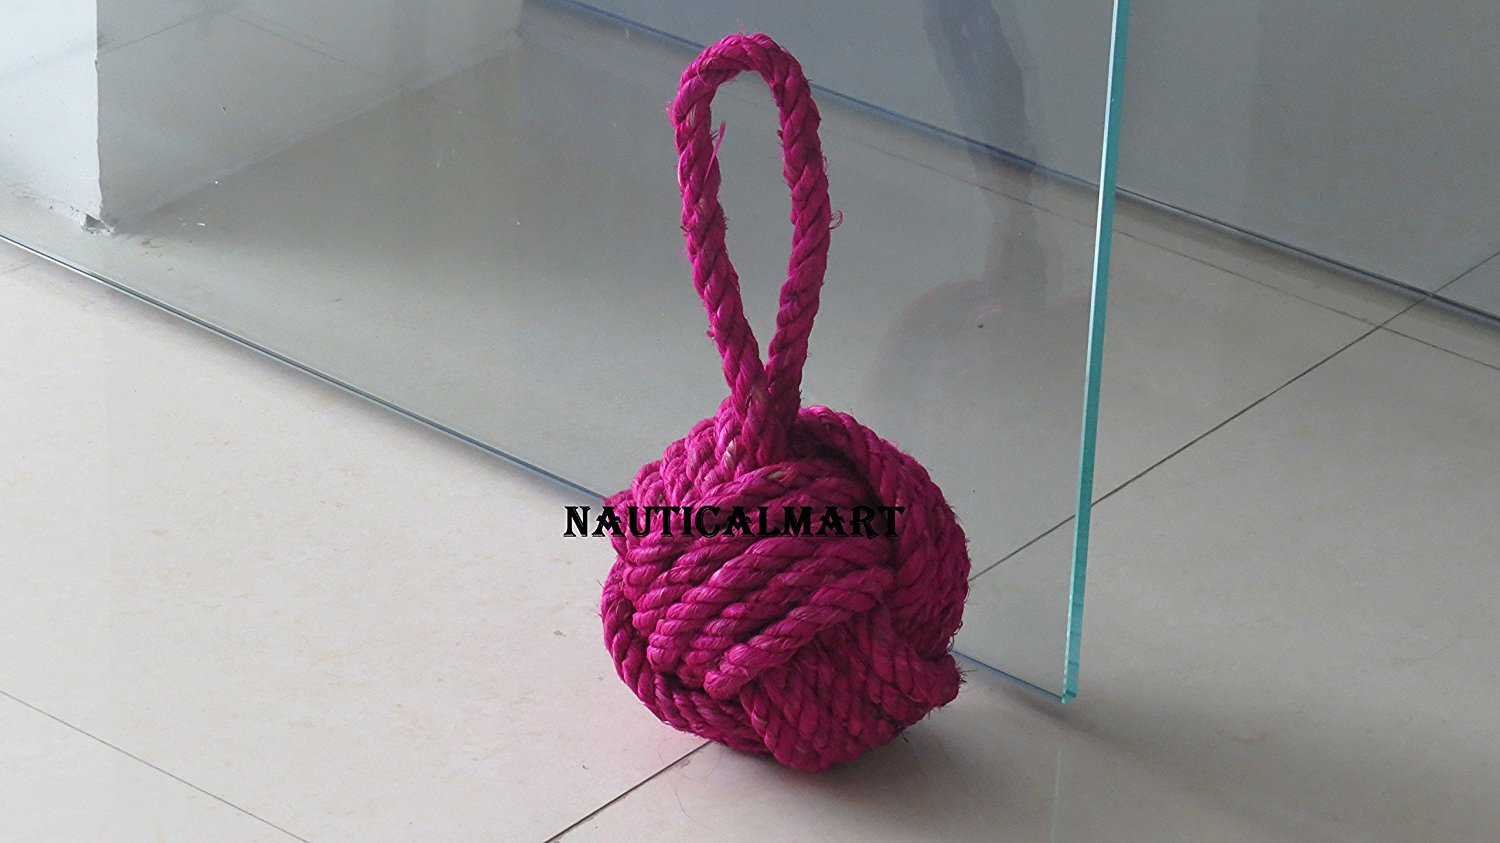 Jute 3.3 lbs Twos Company Marseille Knot Door Stopper